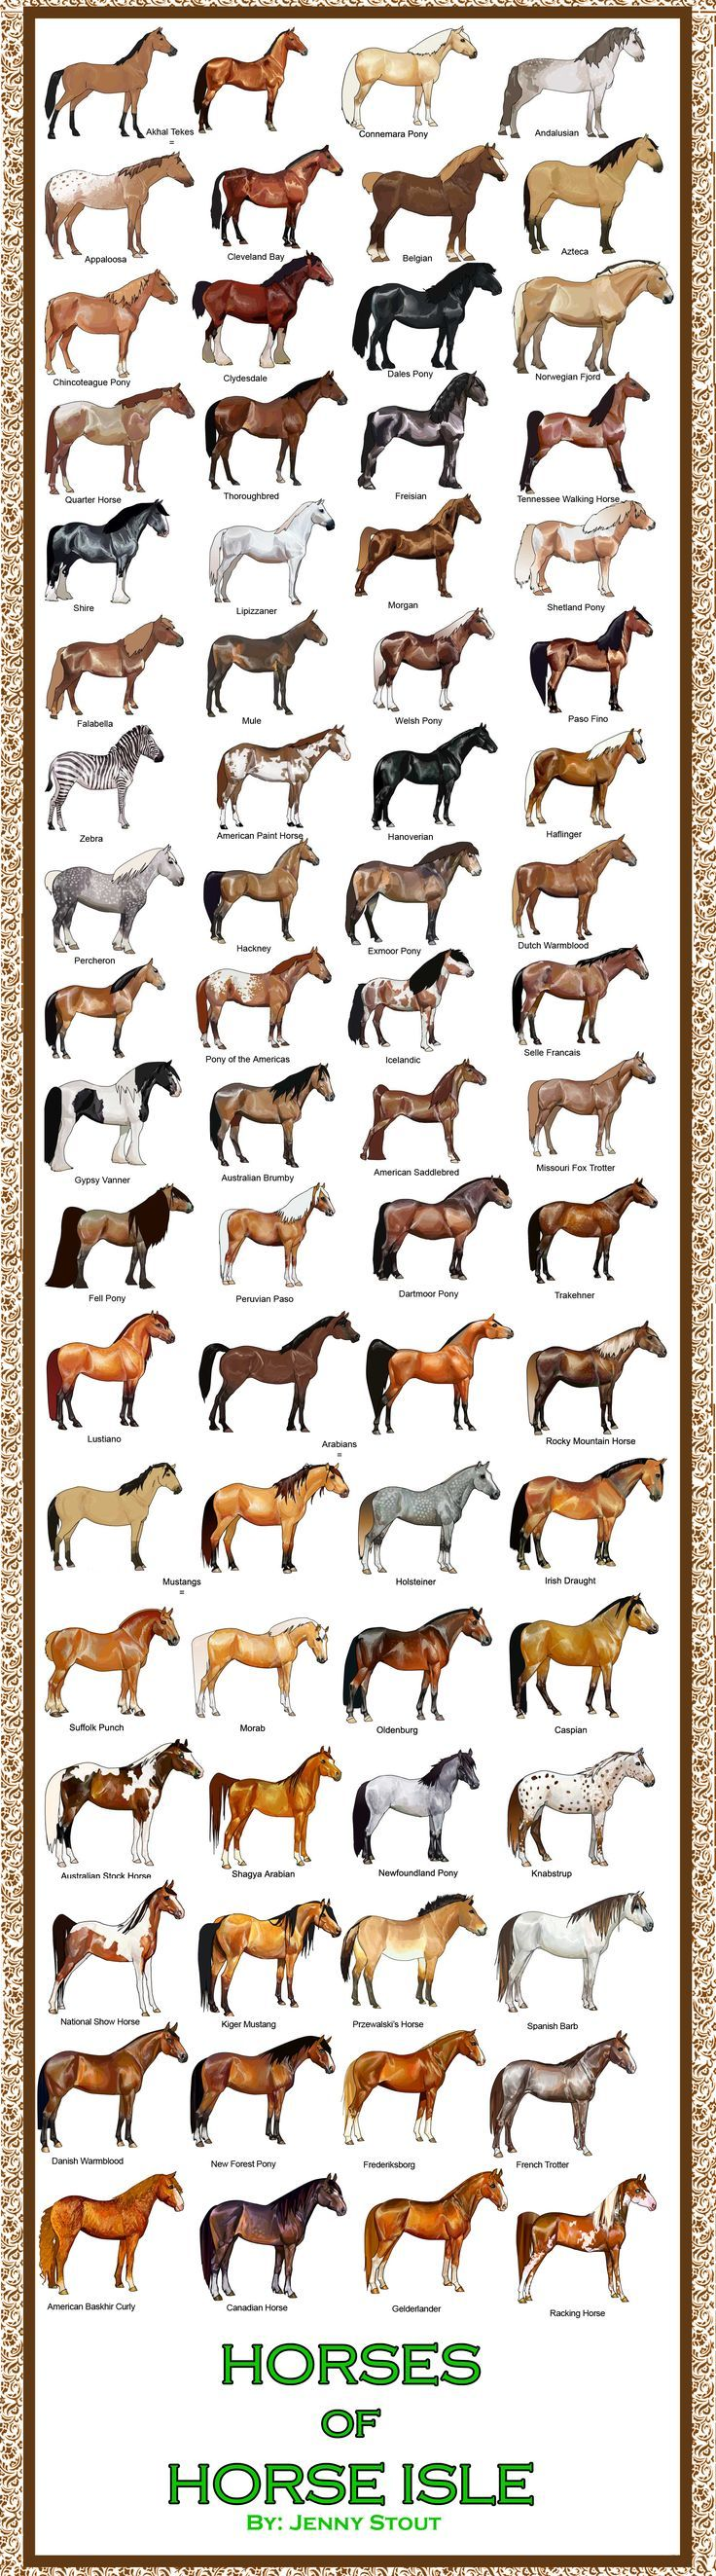 horse breeds with examples | ... come in all shapes and size, Mongolian horses being a smaller breed